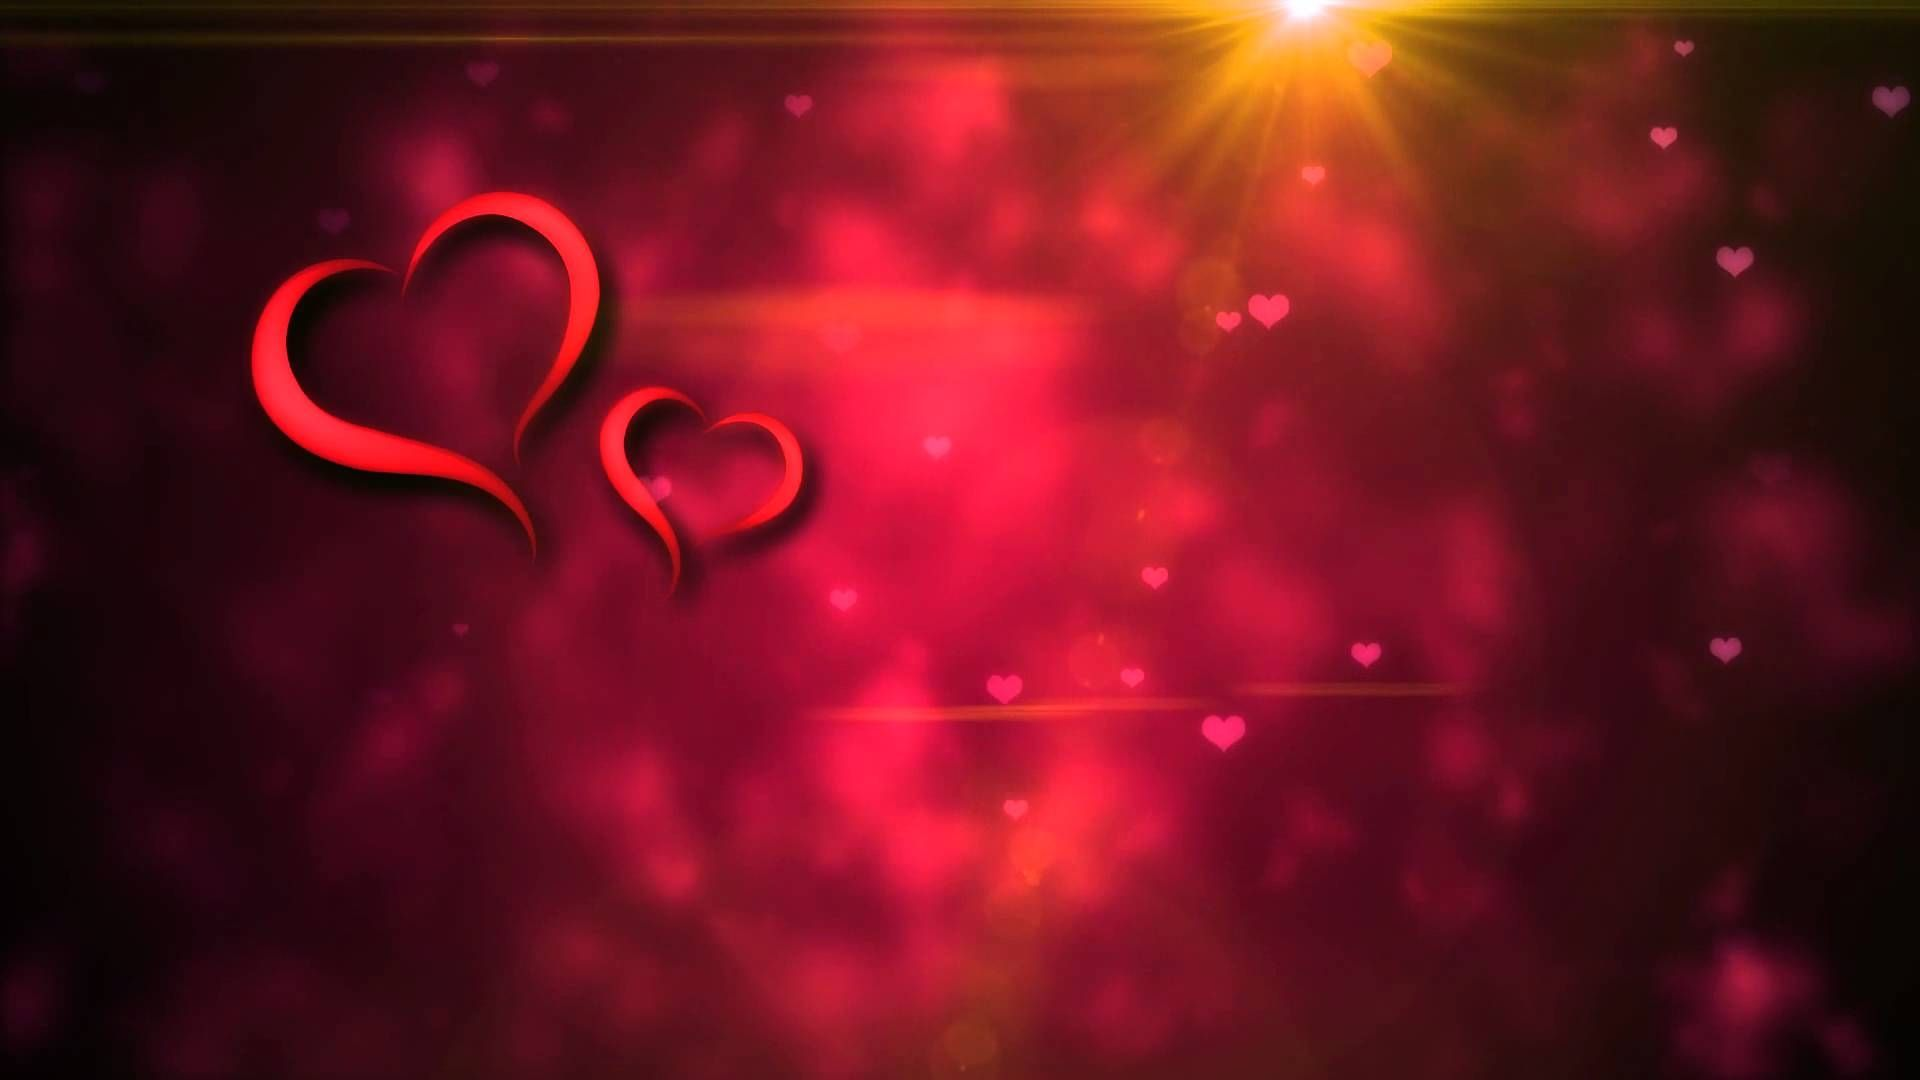 Marriage Background Images Hd Hd Free Love Motion Background Loop